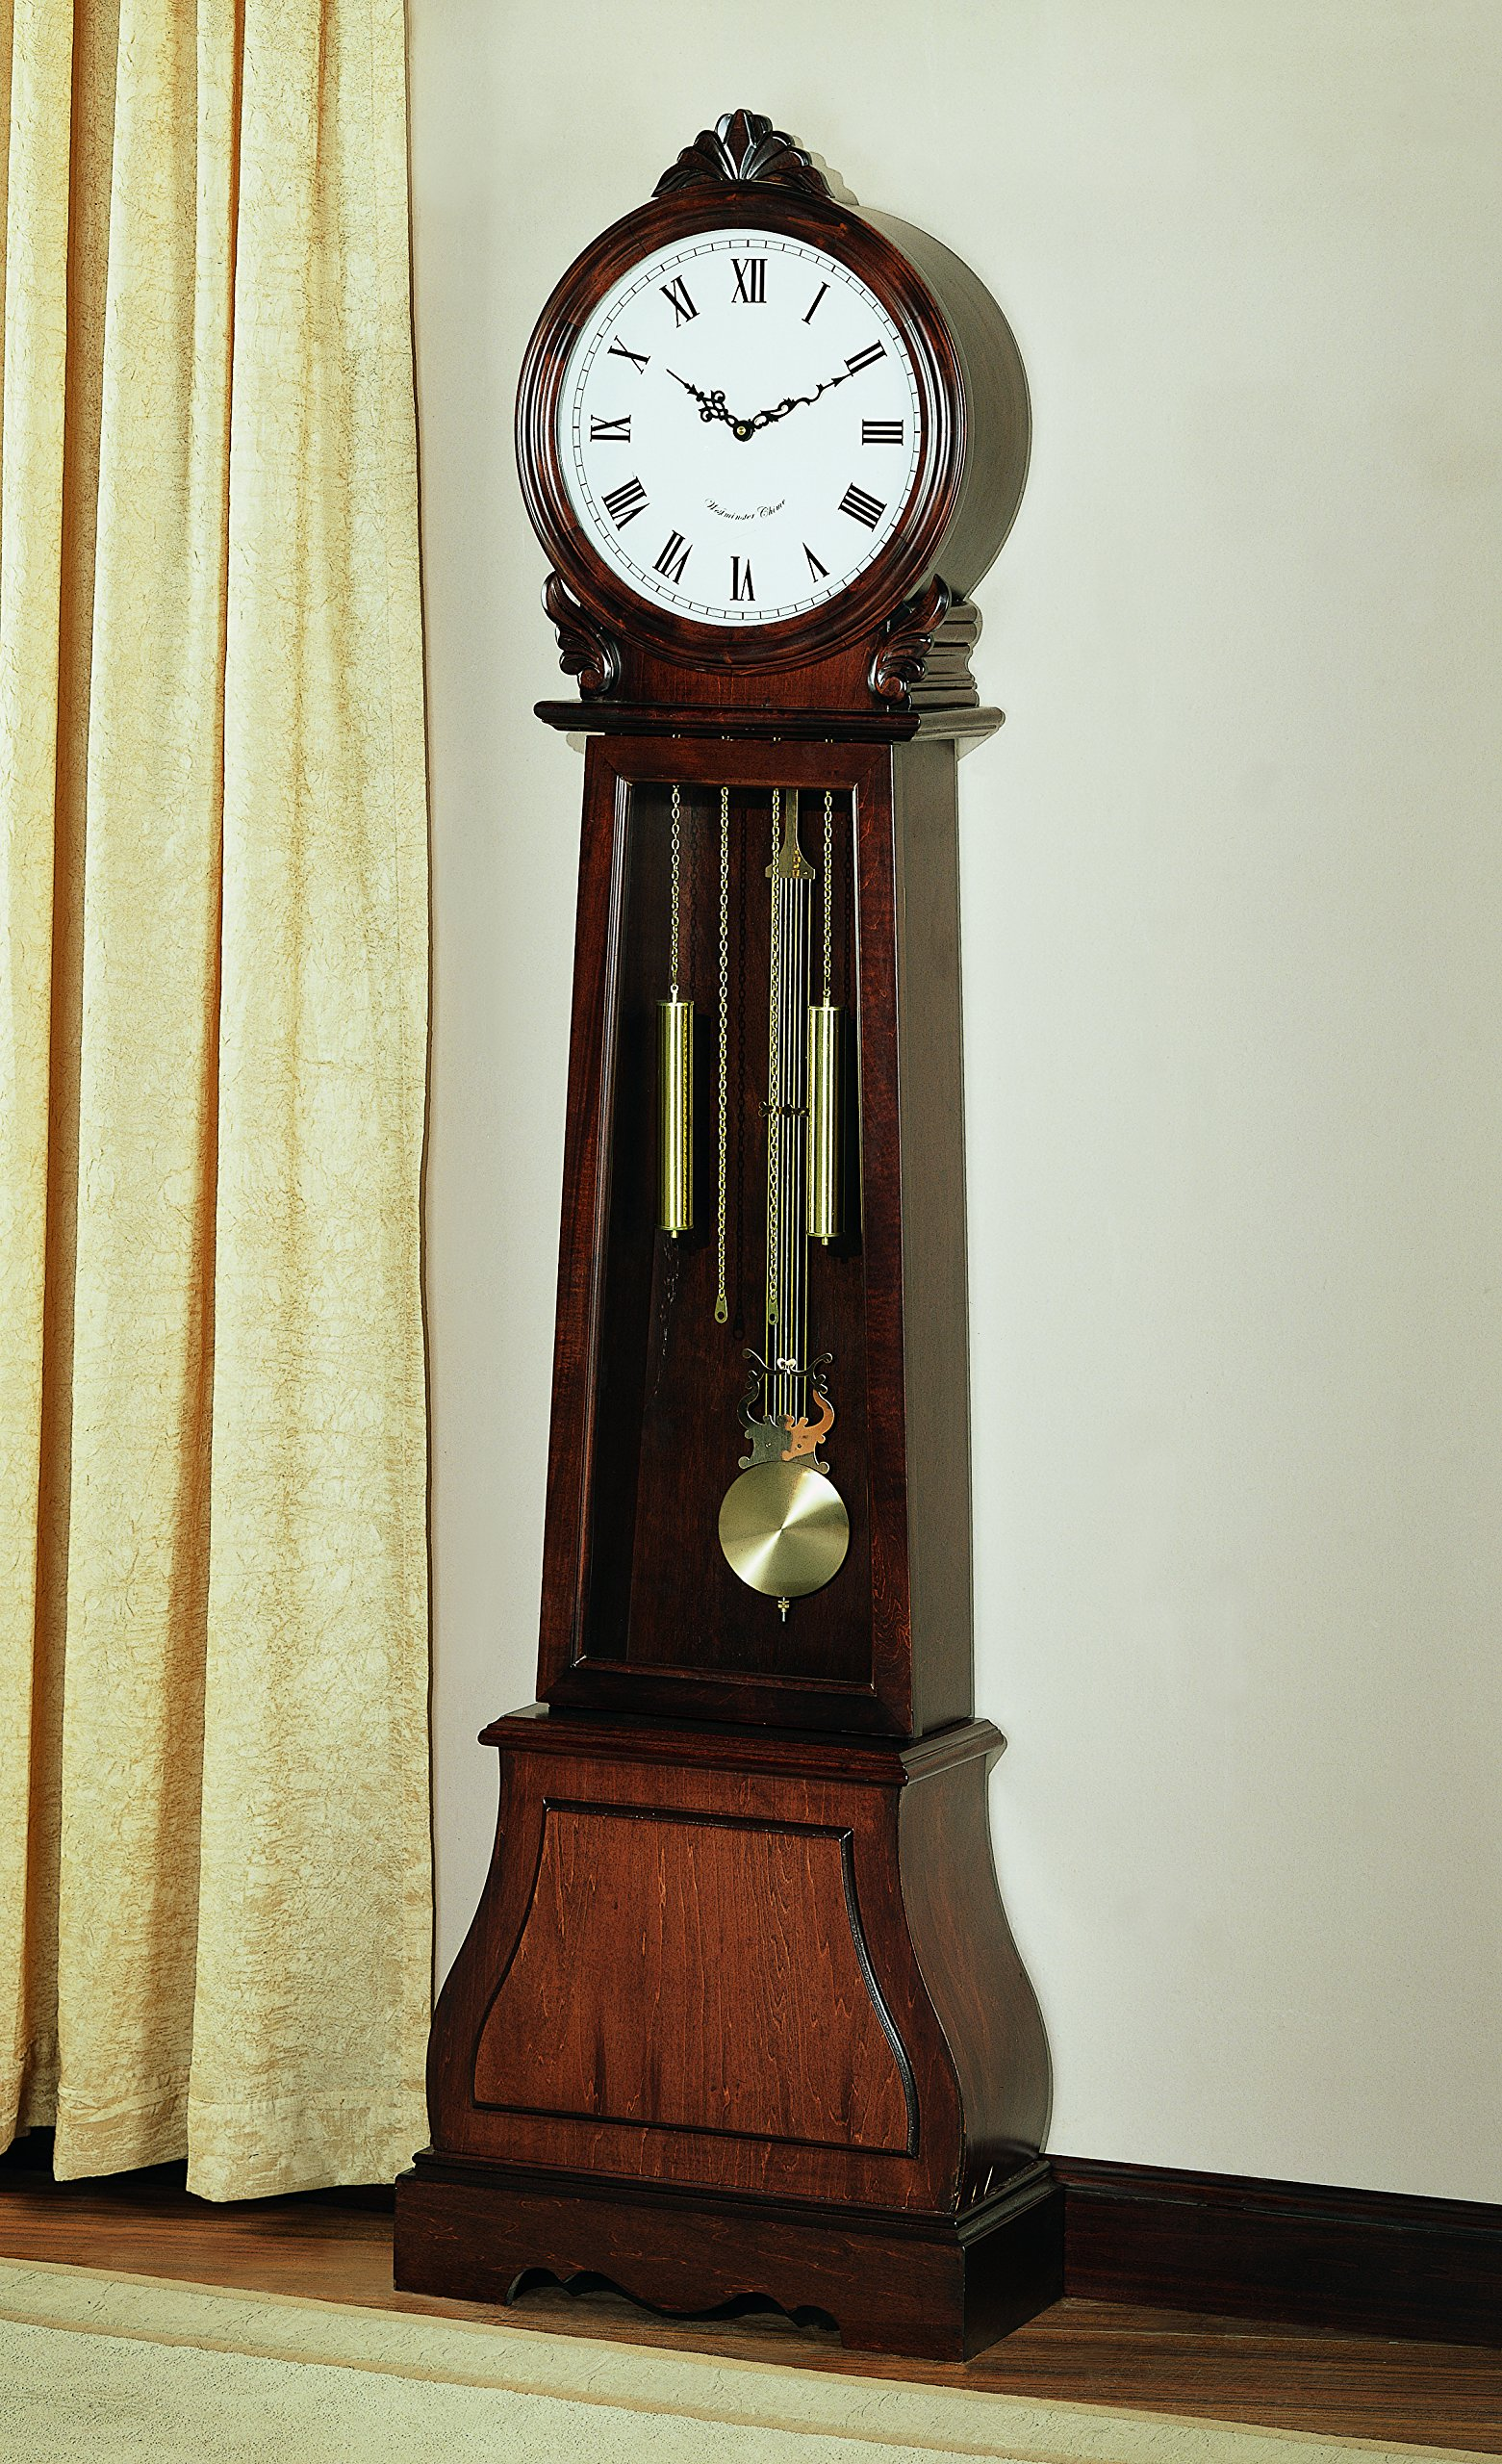 Coaster Home Furnishings 900723 Transitional Grandfather Clock, Brown by Coaster Home Furnishings